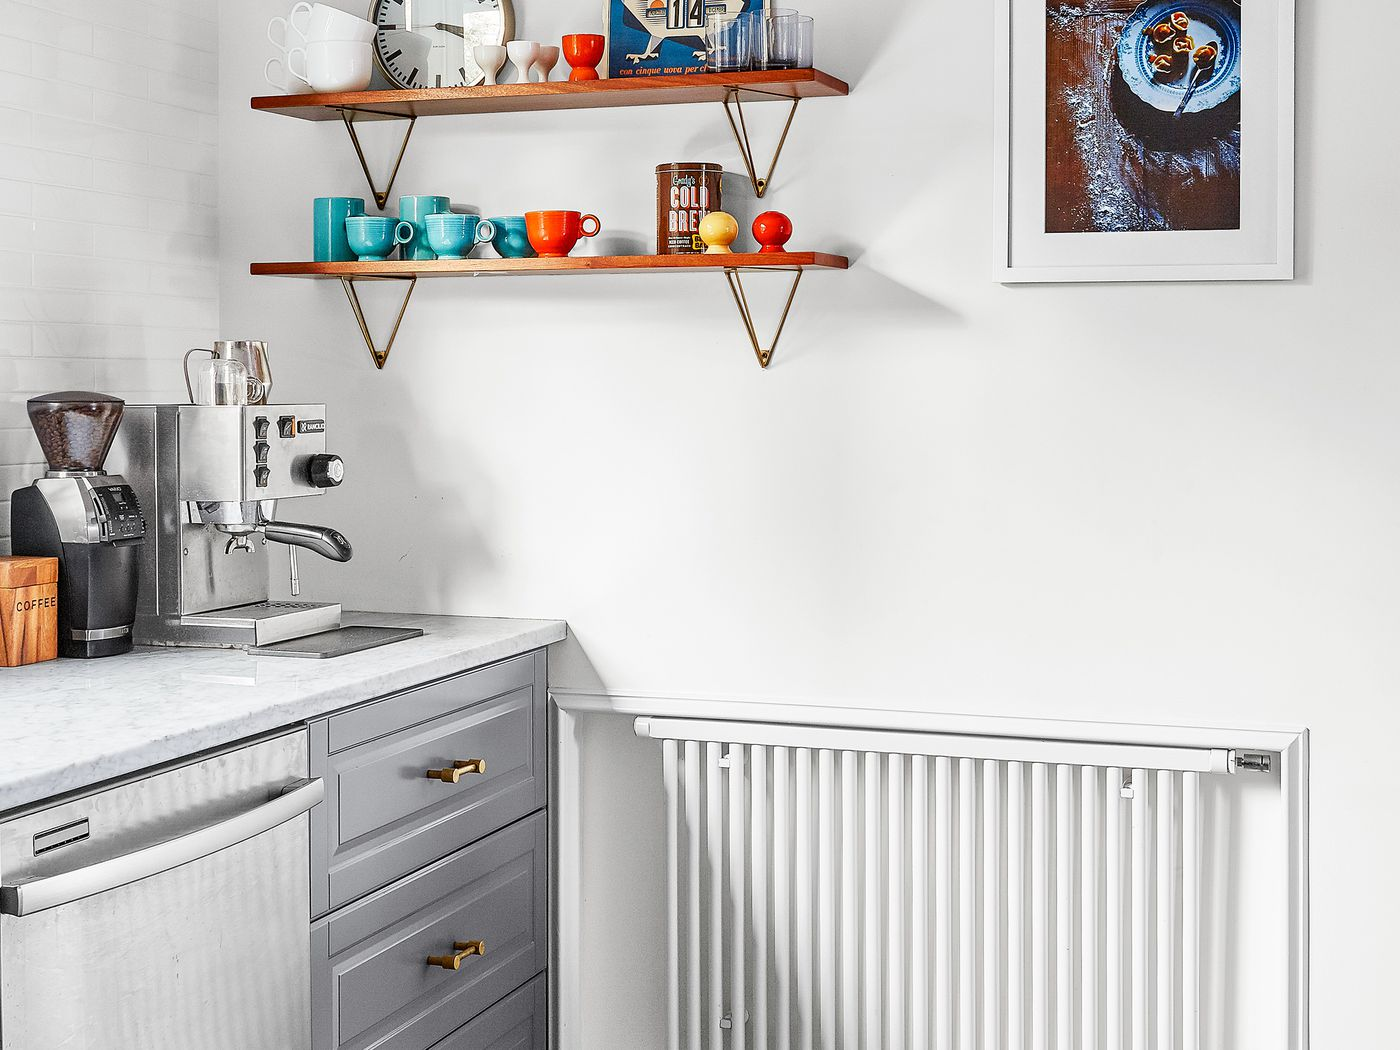 How To Bleed A Radiator In 4 Simple Steps This Old House